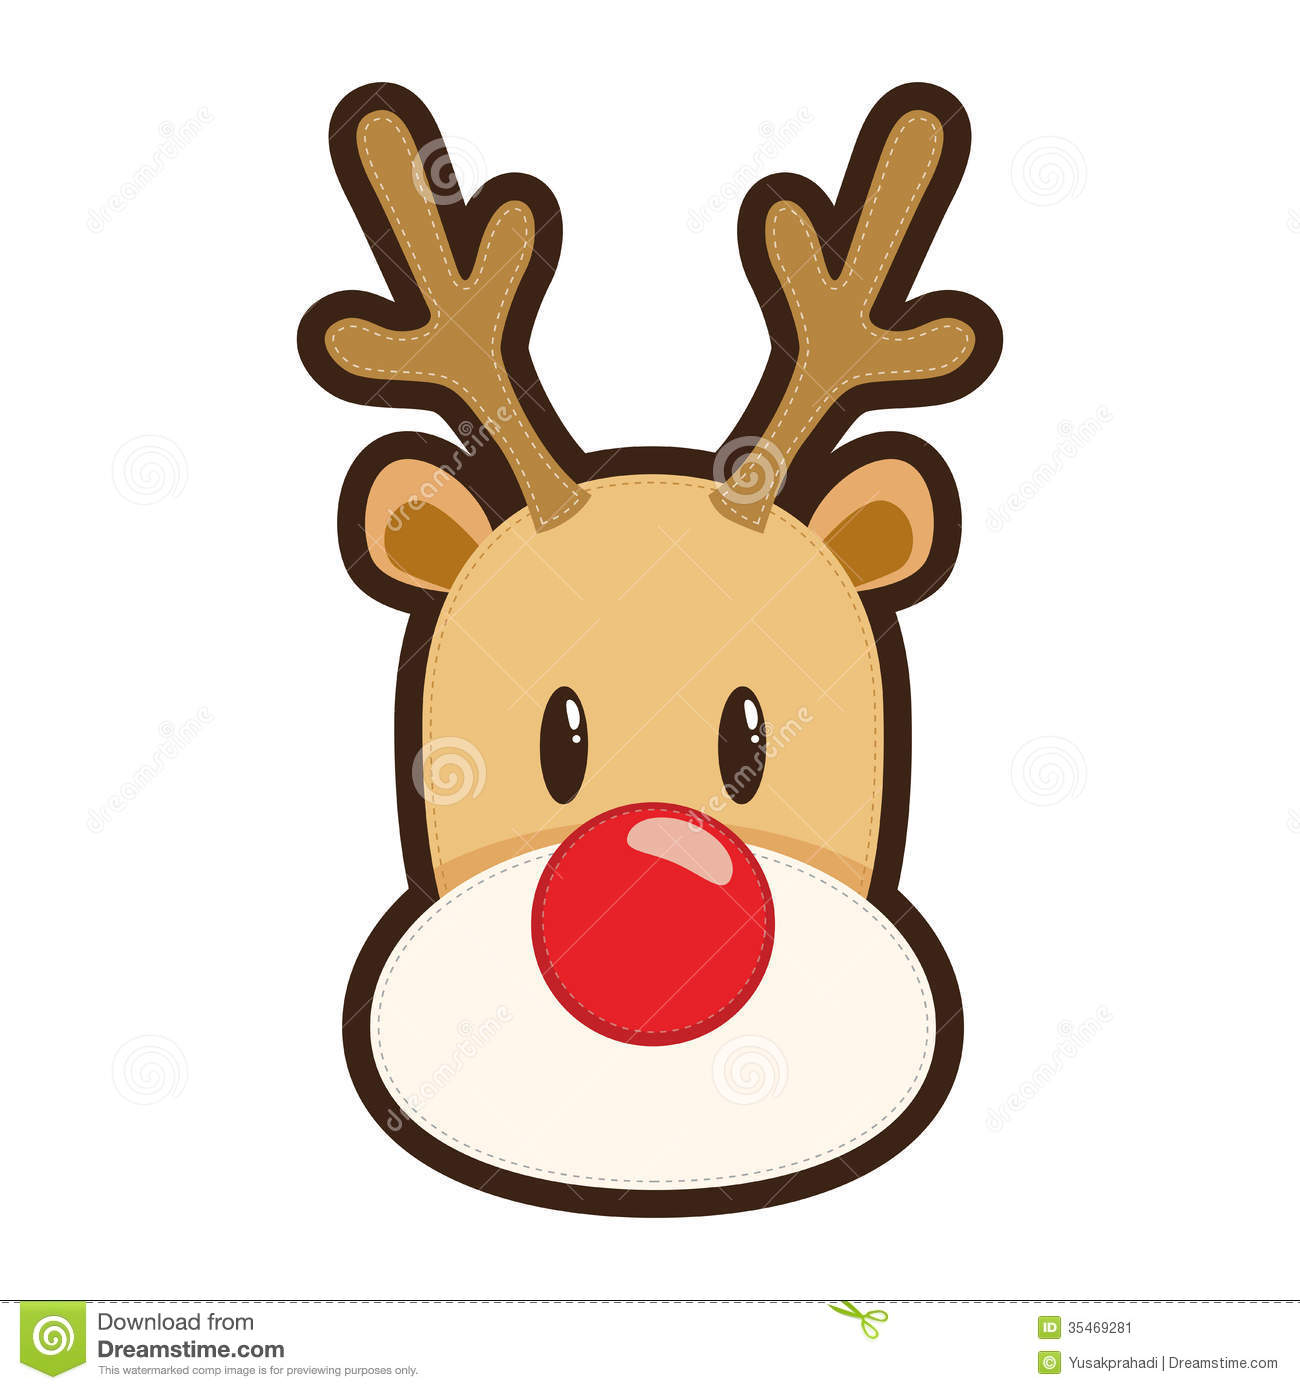 Roudolph clipart svg freeuse Cartoon rudolph the red nosed reindeer white clipart ... svg freeuse